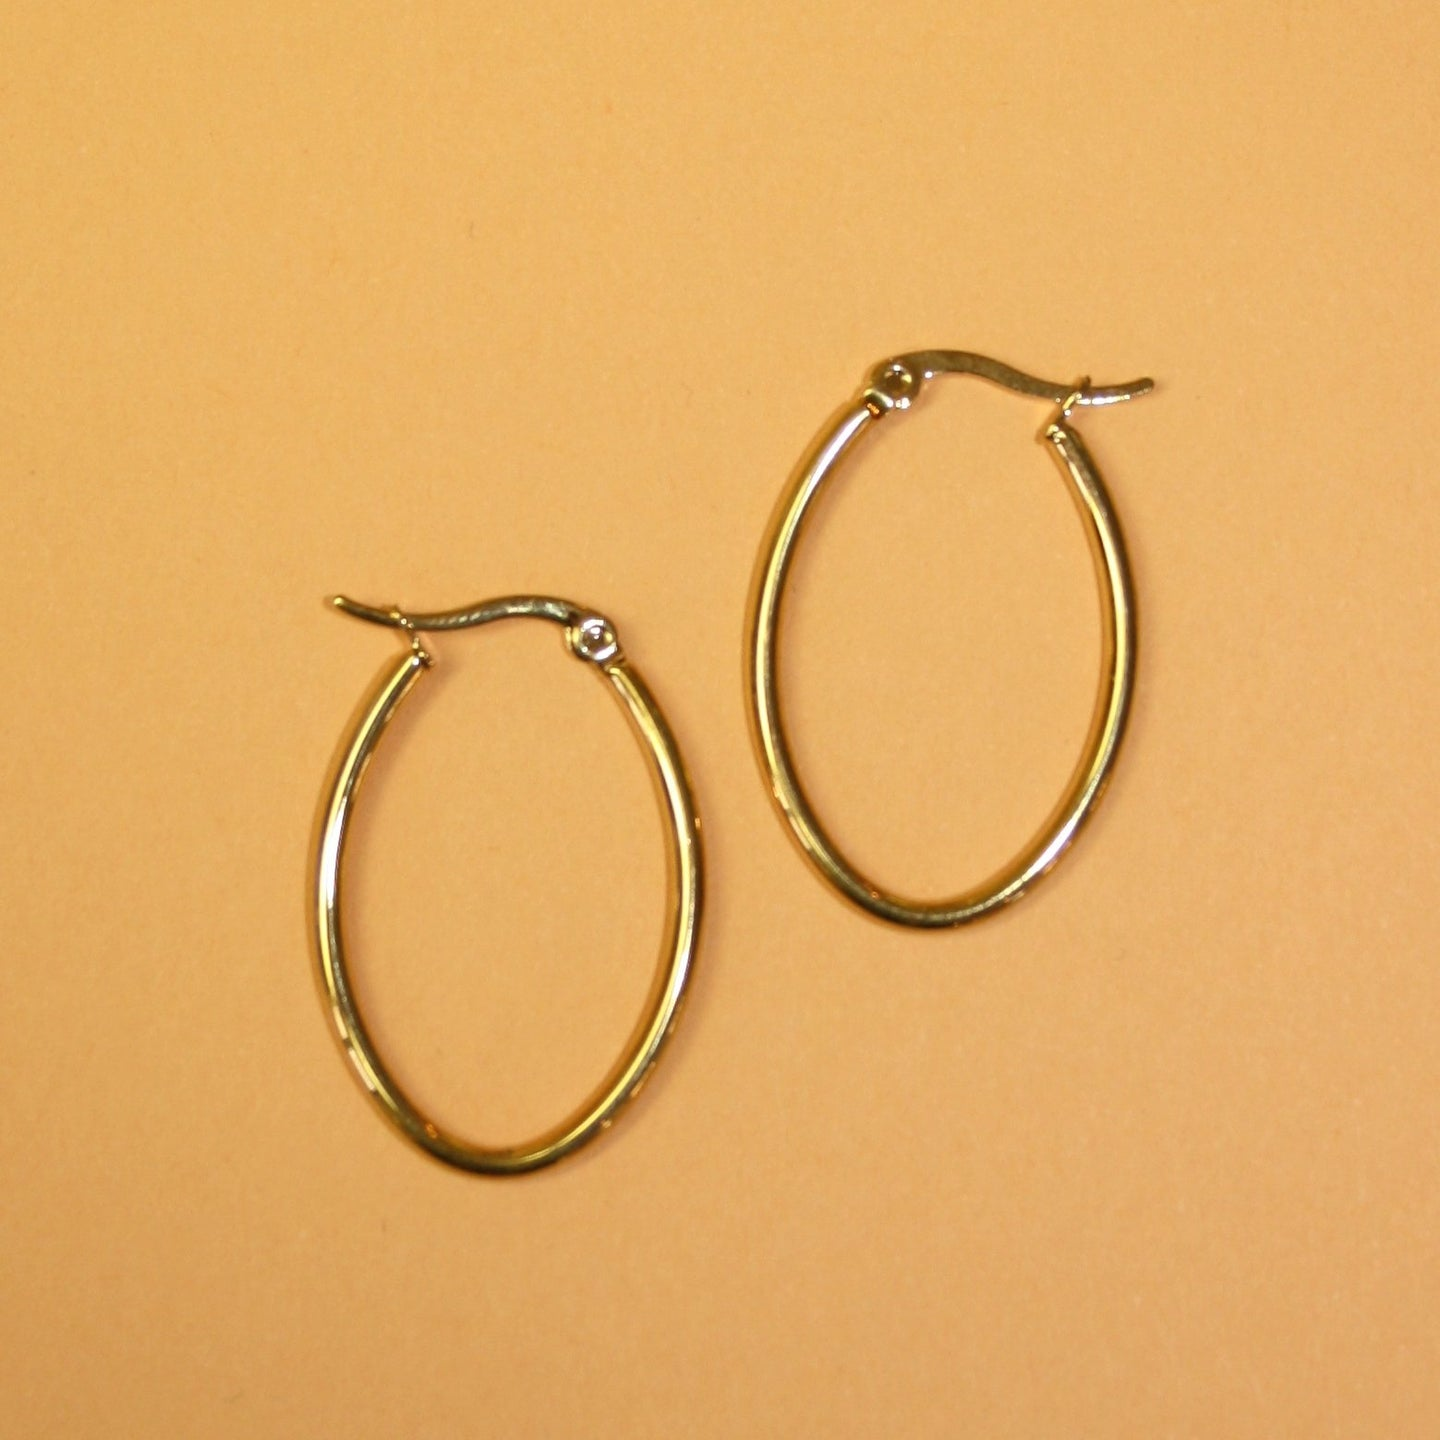 316 Stainless Steel Hoop Earrings Gold Plated Oval 30mm